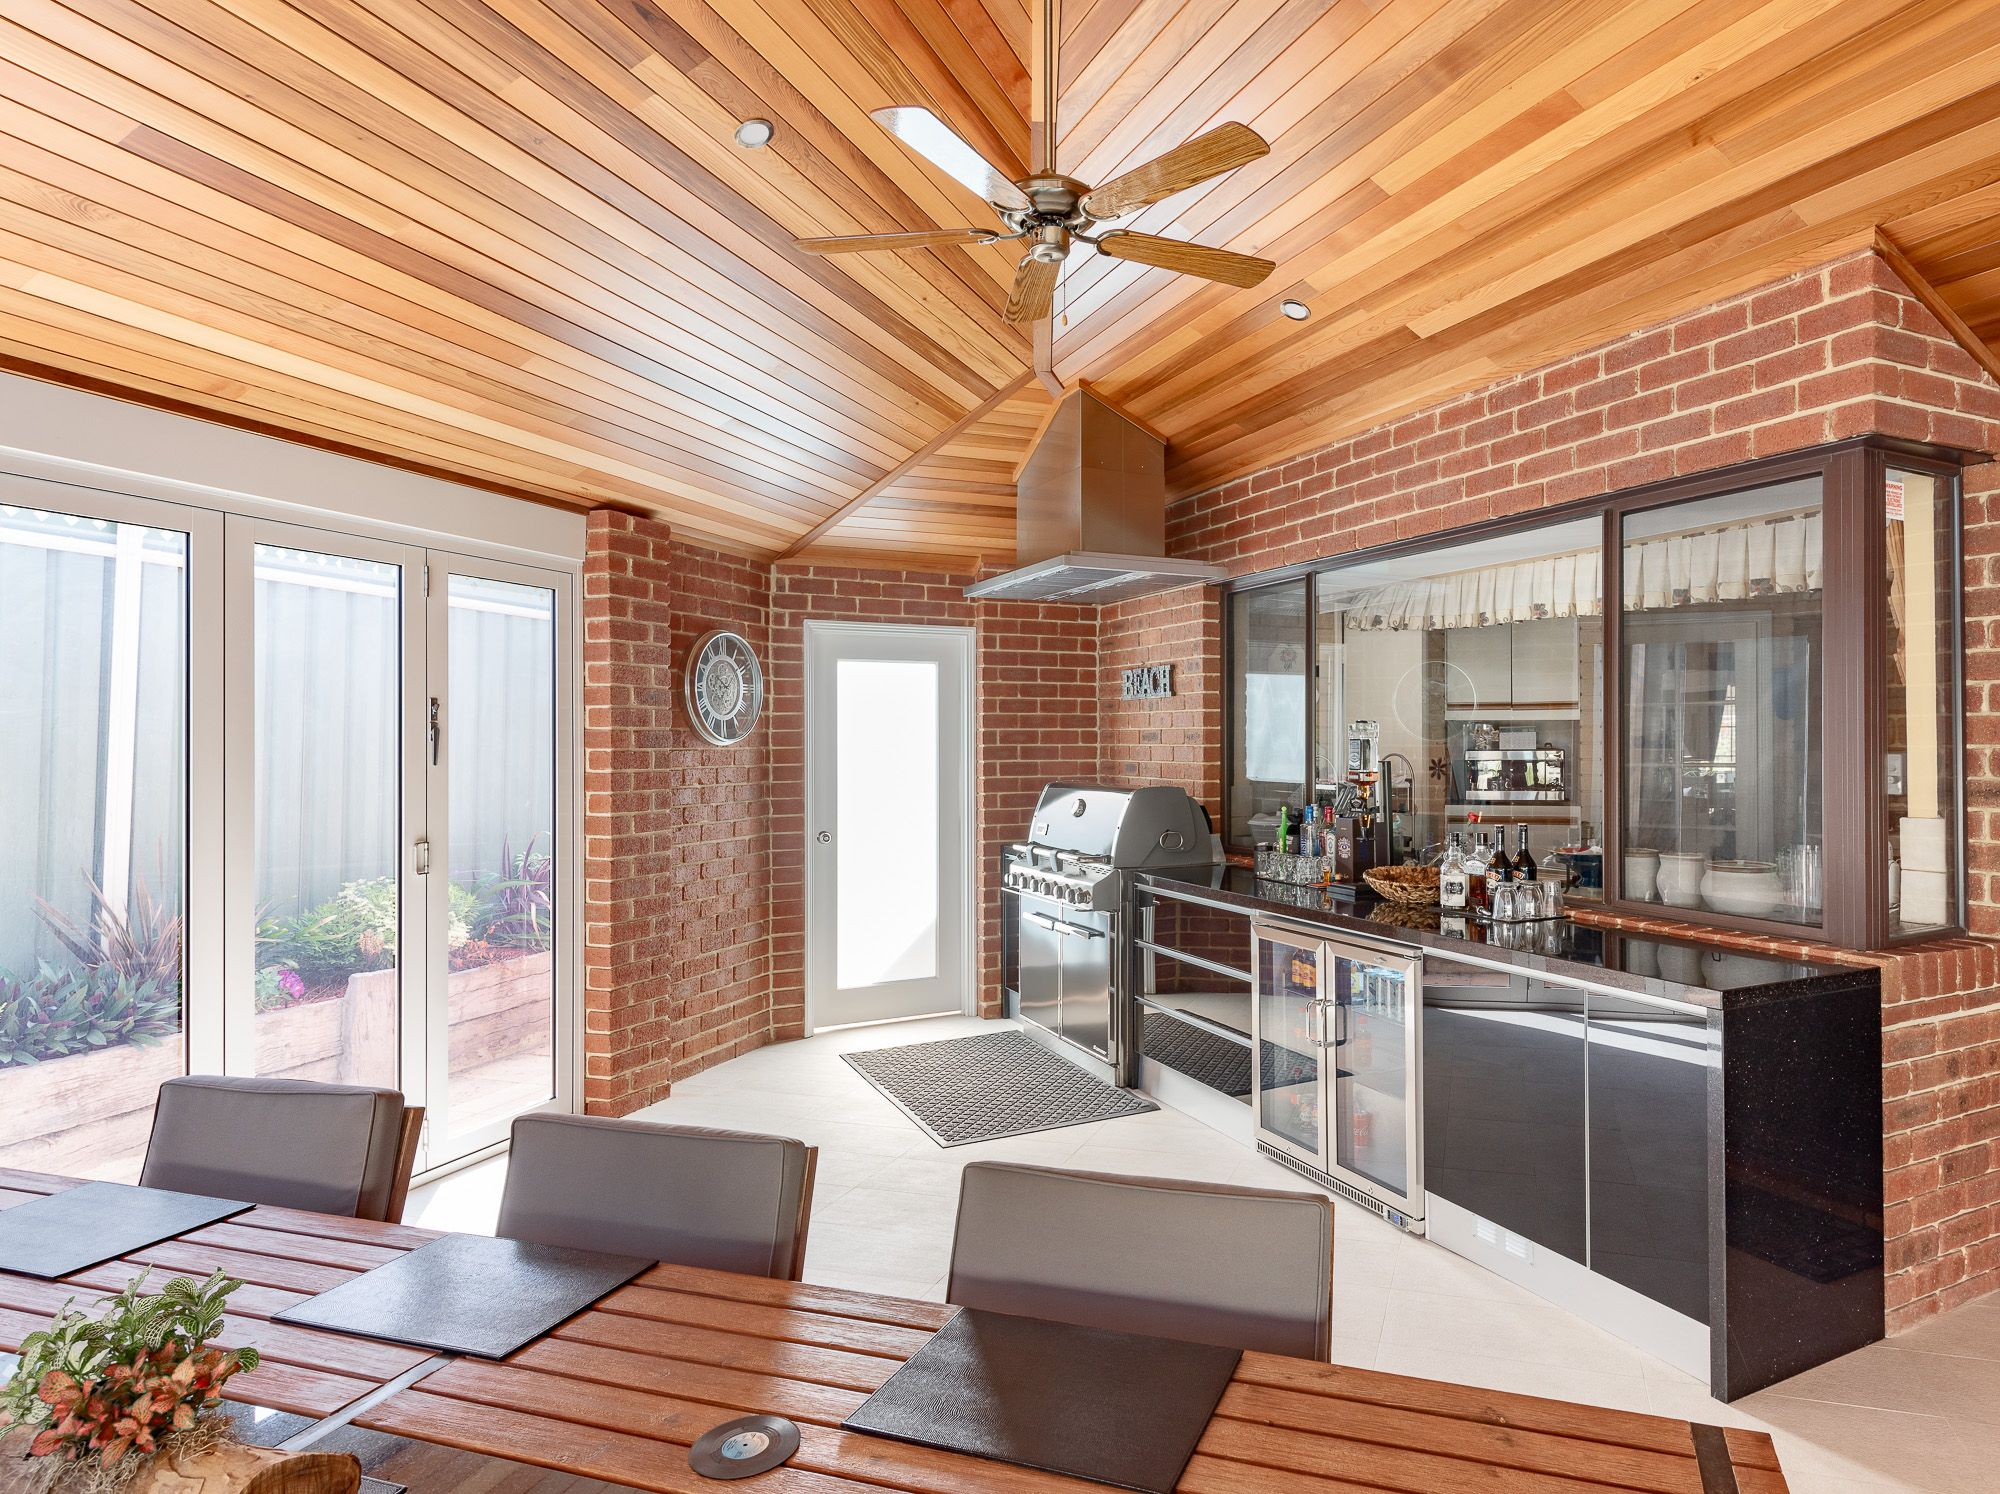 Perth's Outdoor Alfresco Kitchen specialists, with